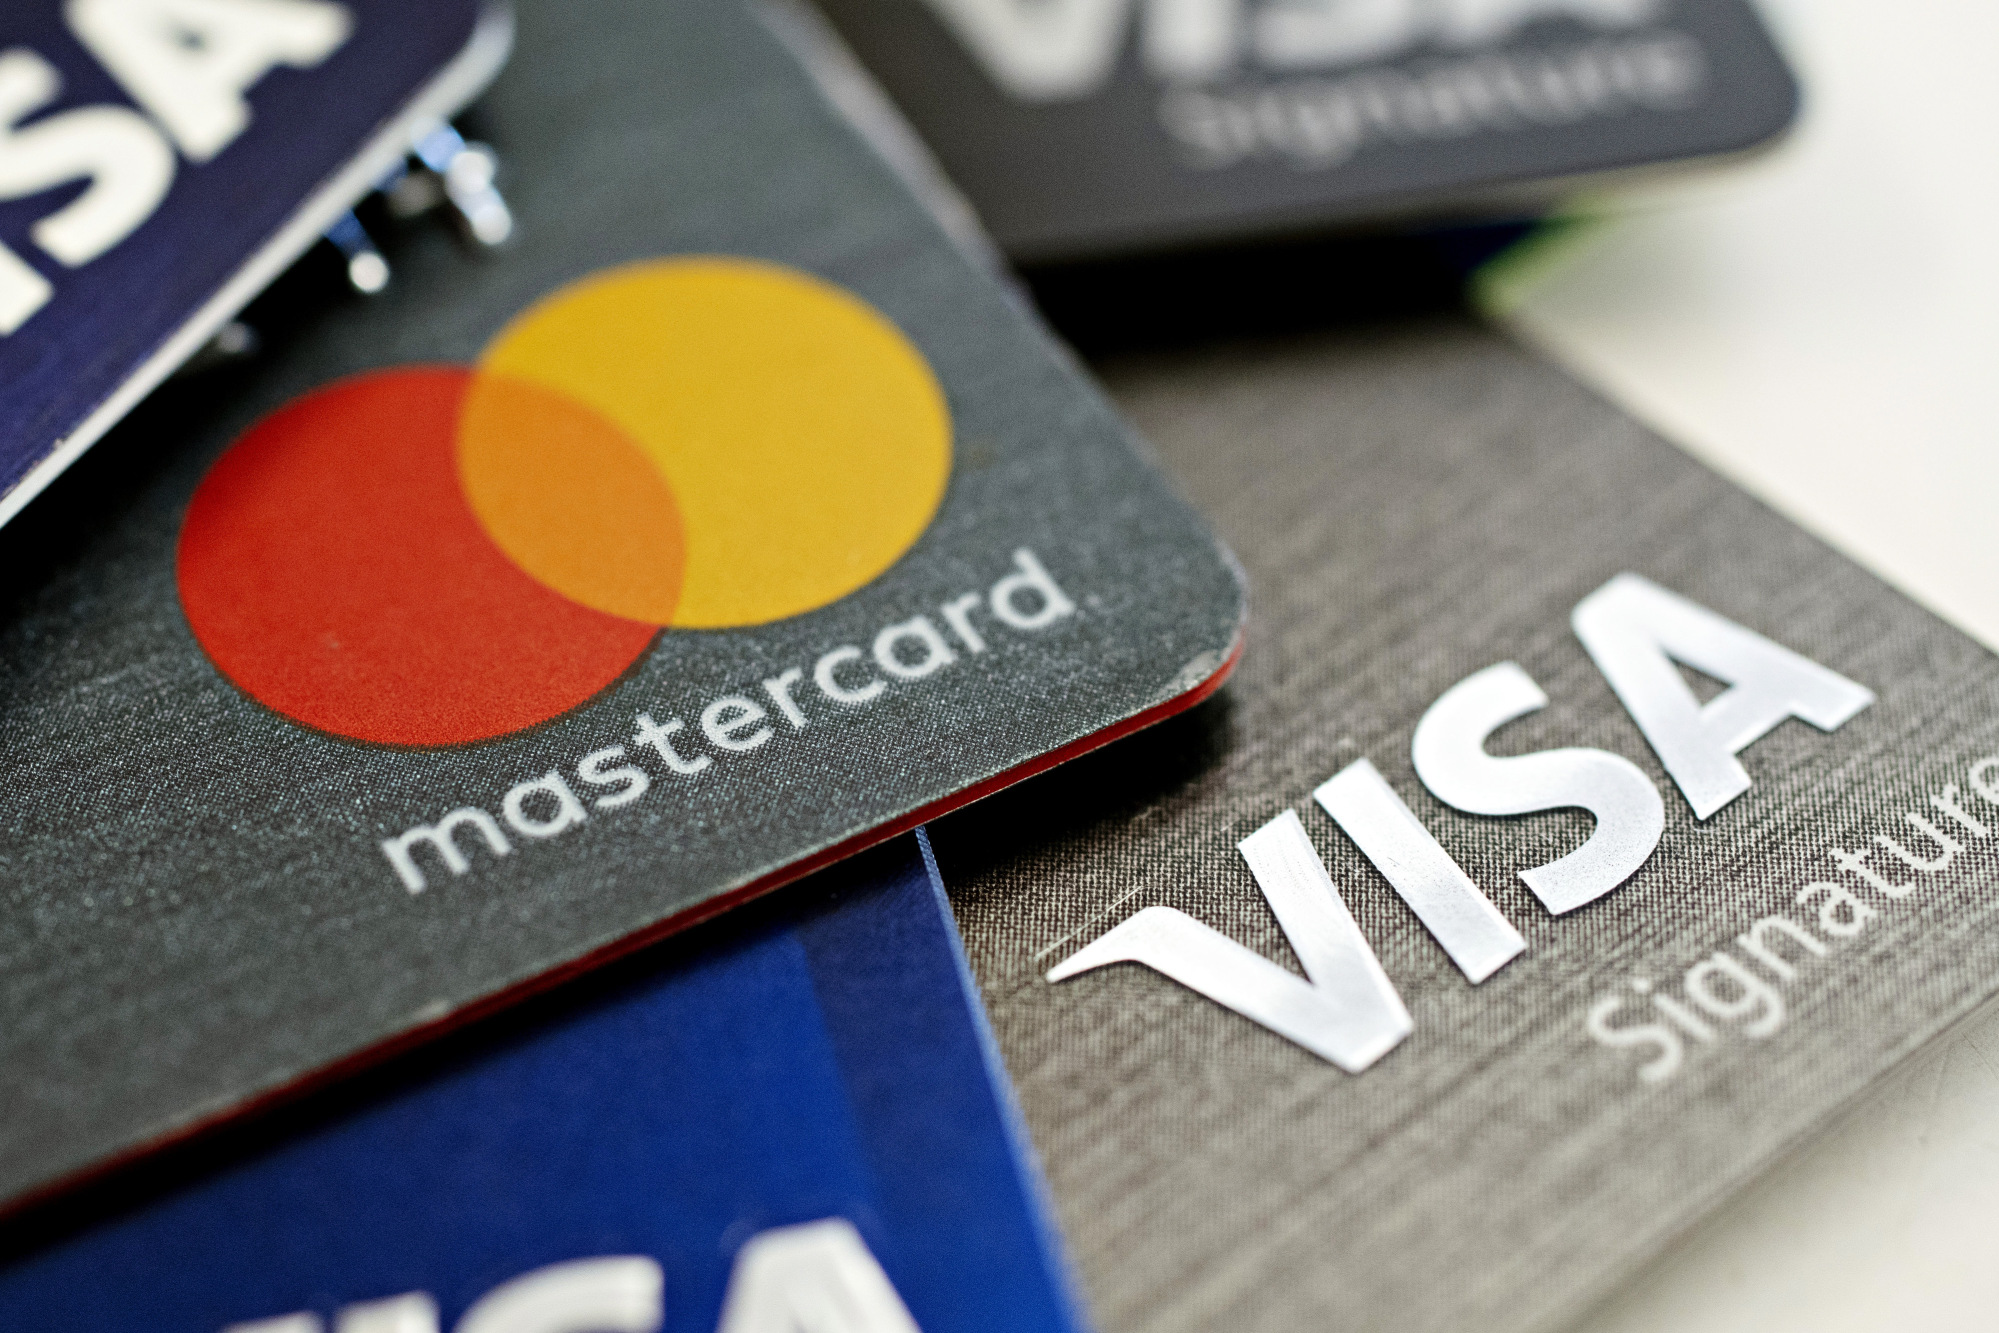 bloomberg.com - Nick Lichtenberg - Visa and Mastercard's Chinese Entry Delayed by Central Bank: FT